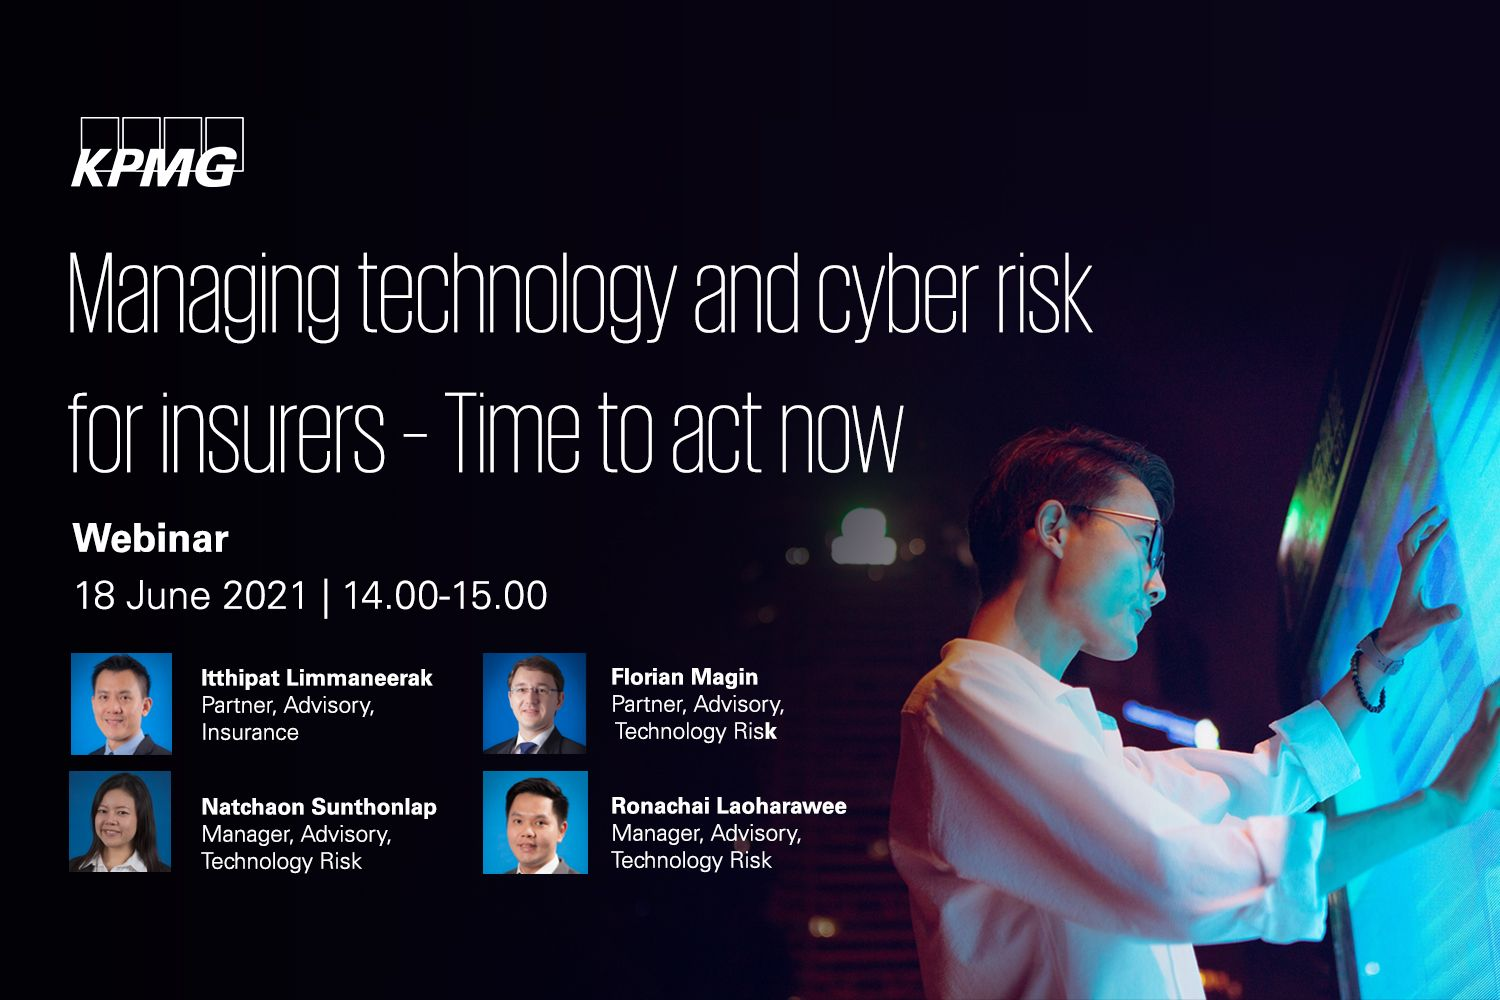 Managing technology and cyber risk for insurers – Time to act now